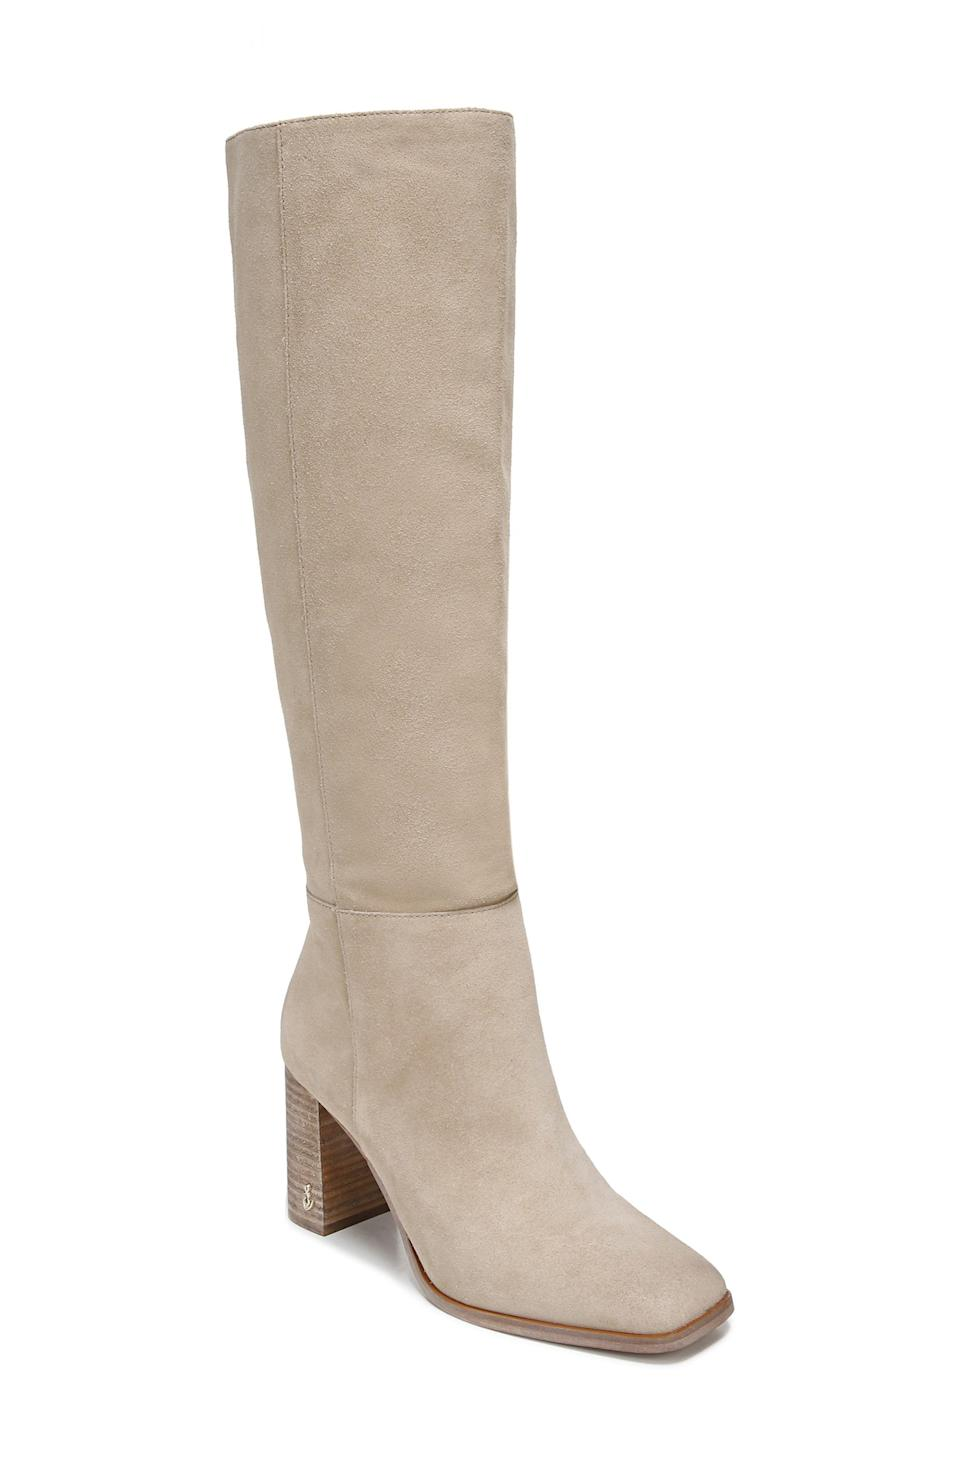 """<p><strong>Sam Edelman</strong></p><p>nordstrom.com</p><p><strong>$135.00</strong></p><p><a href=""""https://go.redirectingat.com?id=74968X1596630&url=https%3A%2F%2Fwww.nordstrom.com%2Fs%2Fsam-edelman-olly-knee-high-boot-women%2F5910684&sref=https%3A%2F%2Fwww.elle.com%2Ffashion%2Fshopping%2Fg37873182%2Fnordstrom-fall-clothing-sale%2F"""" rel=""""nofollow noopener"""" target=""""_blank"""" data-ylk=""""slk:Shop Now"""" class=""""link rapid-noclick-resp"""">Shop Now</a></p><p>How versatile are these knee-high boots from Sam Edelman? It'll go great under a midi dress or paired with a mini skirt and tights. </p>"""